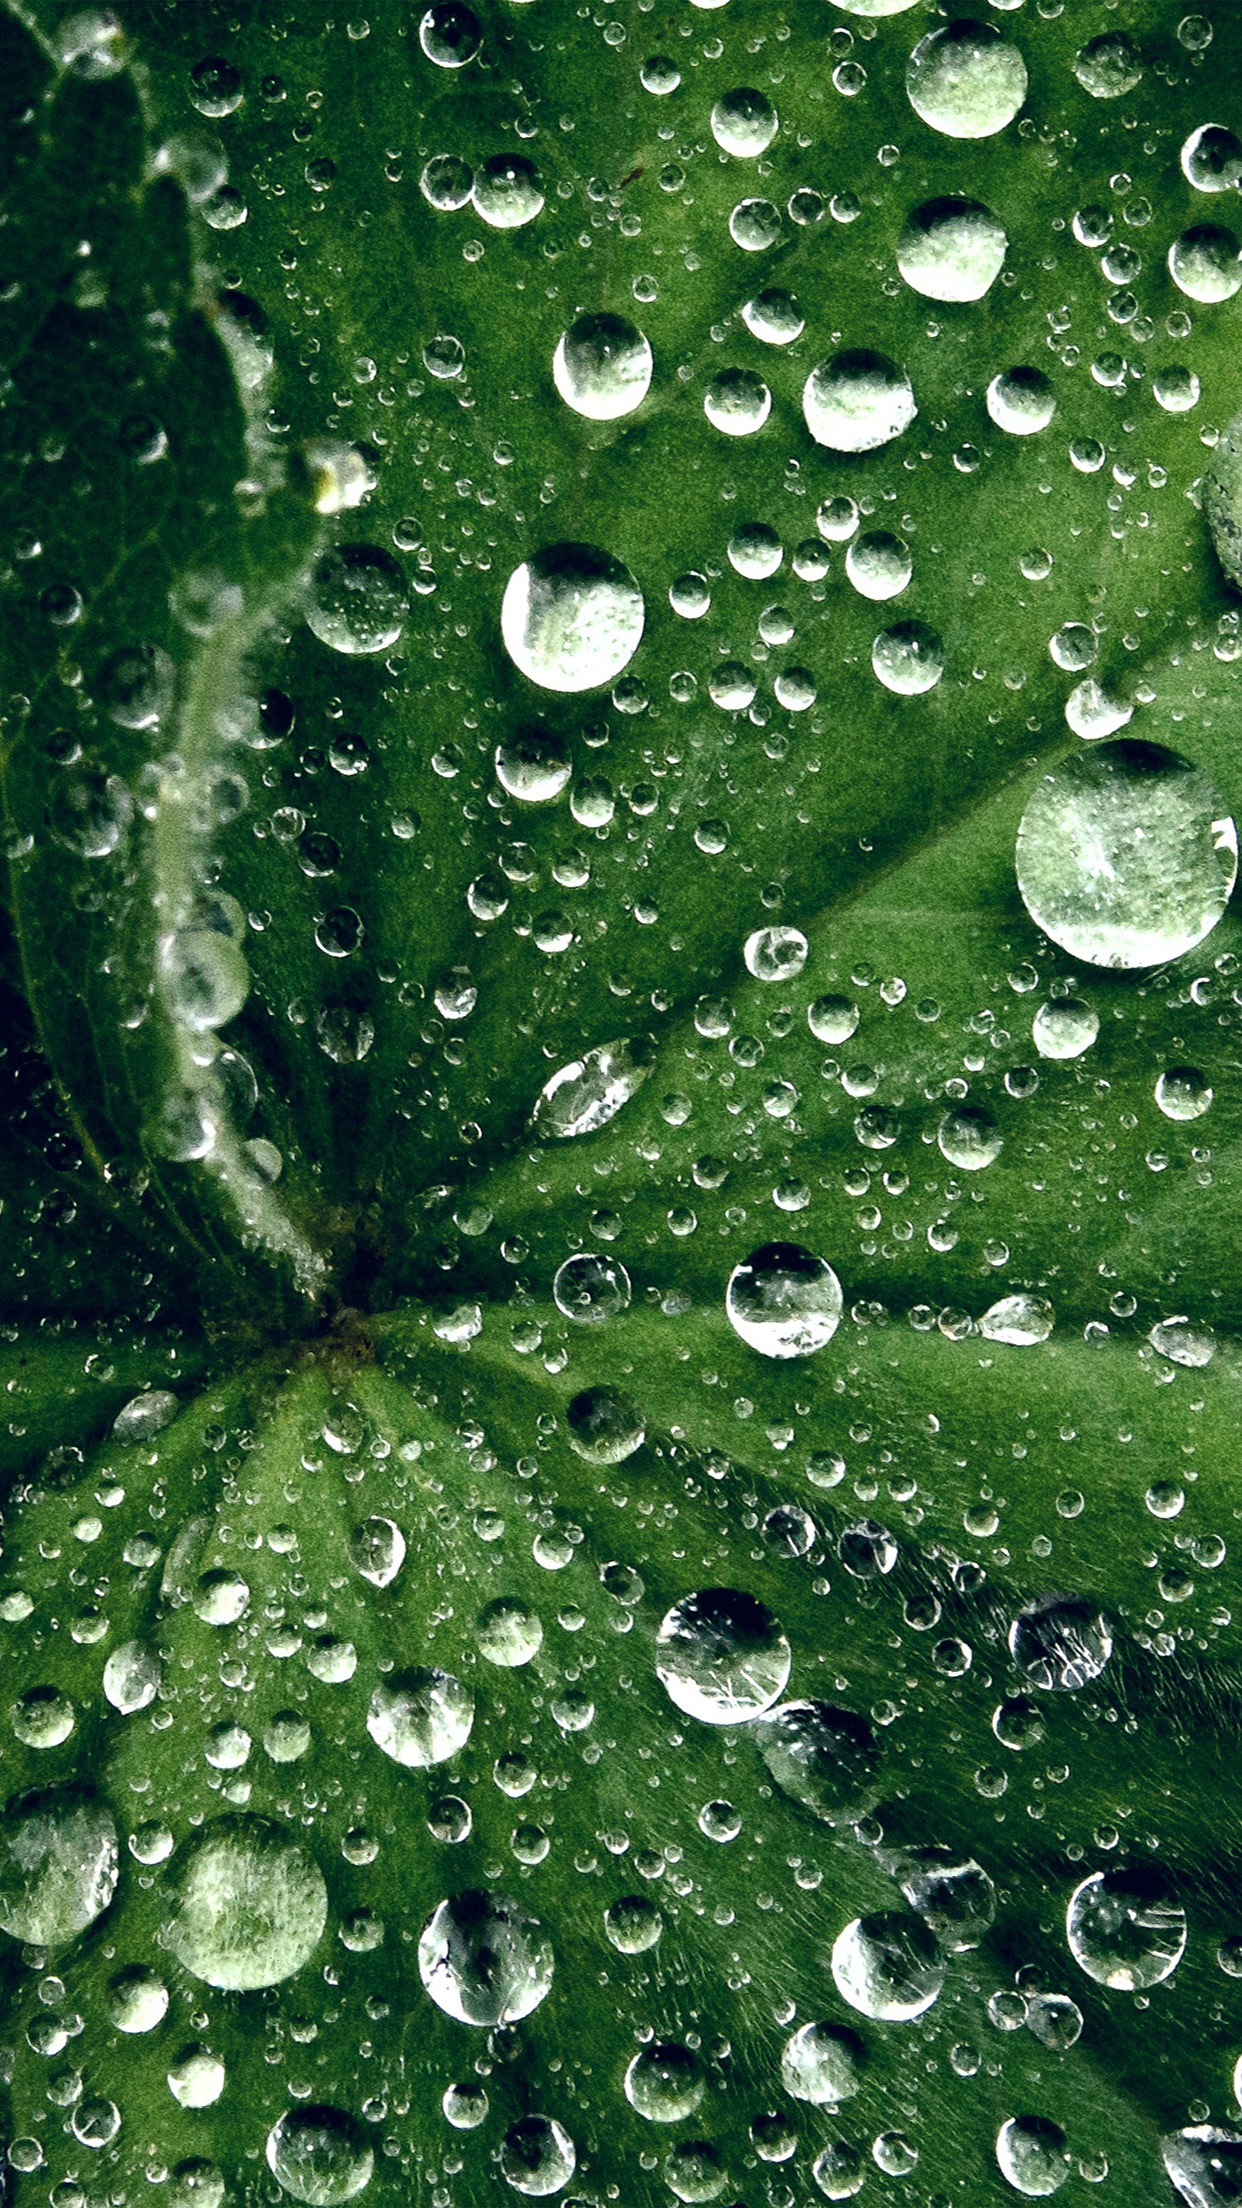 Live Photo Wallpaper Iphone Se My46 Water Drop On Leaf Summer Green Live Wallpaper